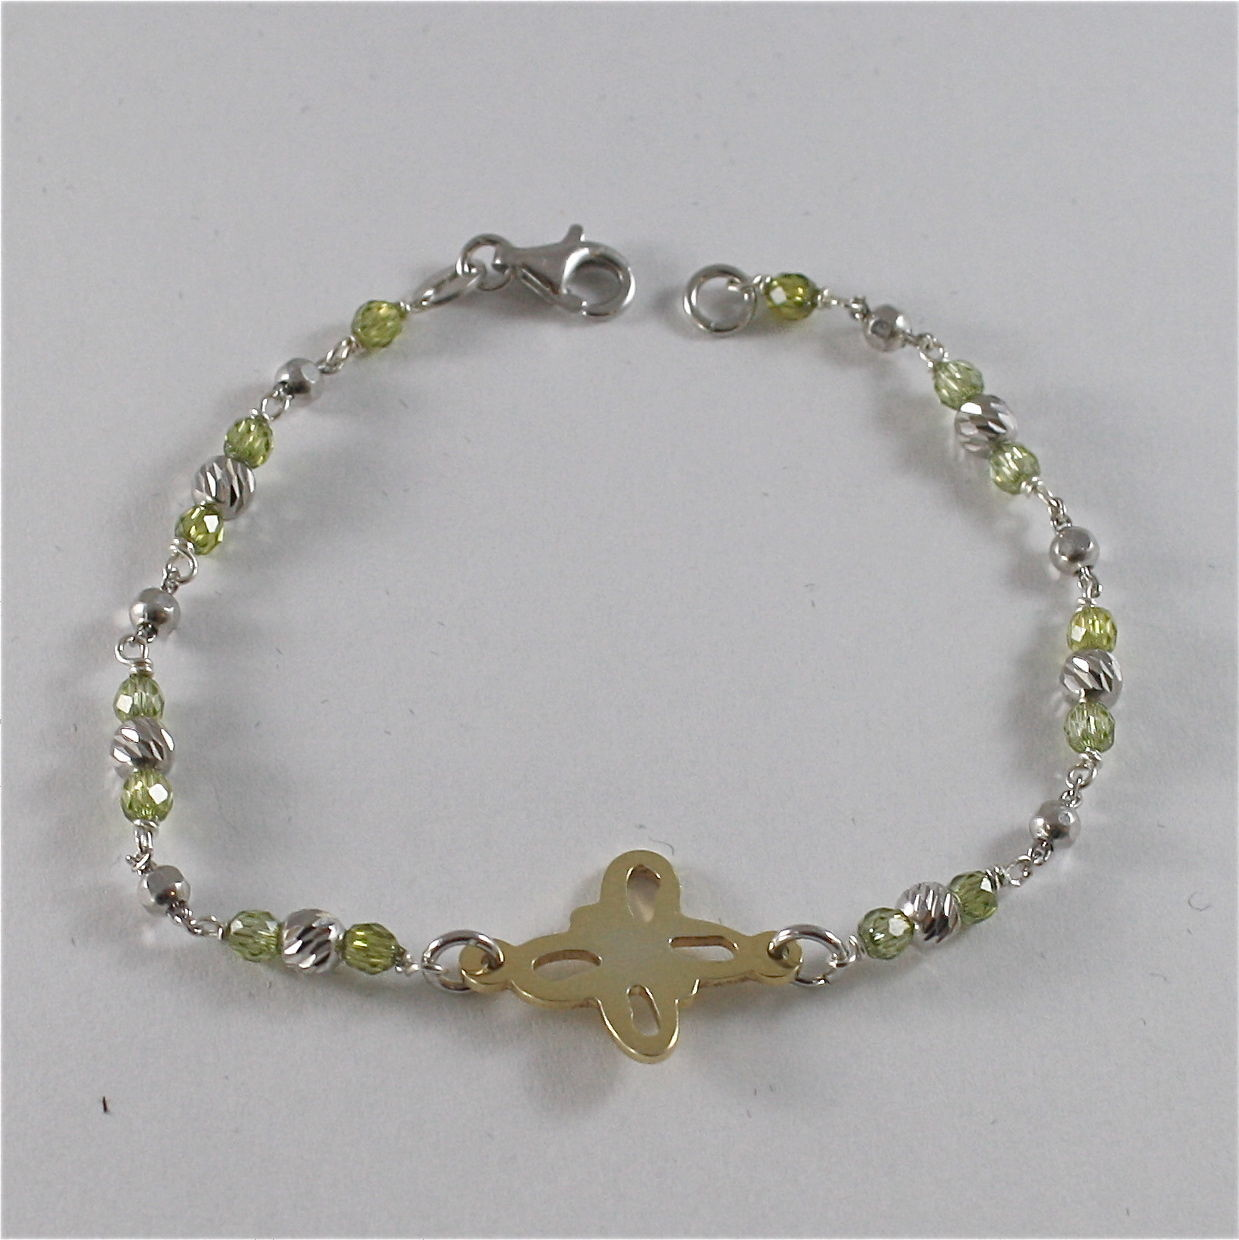 925 SILVER BRACELET WITH MULTIFACETED BALLS AND BUTTERFLY, MADE IN ITALY, 58 USD